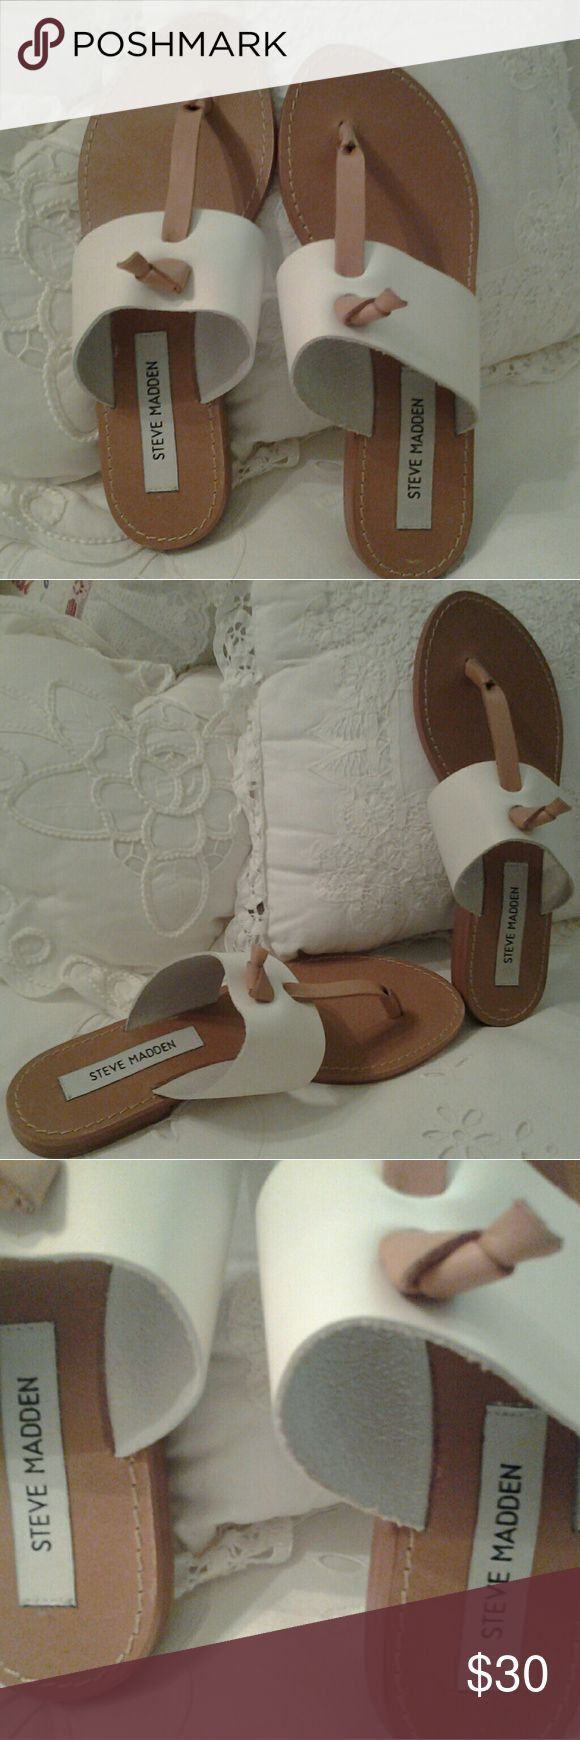 "STEVE MADDEN OLIVIA WHITE LEATHER NWT SANDAL  6 I HAVE A BRAND NEW PAIR OF STEVE MADDEN ""OLIVIA"" WHITE/ BROWN SANDALS FOR SALE.  THEY HAVE NEVER BEEN WORN, THE TAGS ARE STILL ON THE BOTTOM $59.00/  THEY ARE SIZE 6 MEDIUM  THEY HAVE LEATHER UPPER / SOCK AND RUBBER OUT SOLE.  THEY WERE MADE IN BRAZIL.  IF YOU HAVE ANY QUESTIONS, PLEASE ASK. THANKS Steve Madden Shoes Sandals"